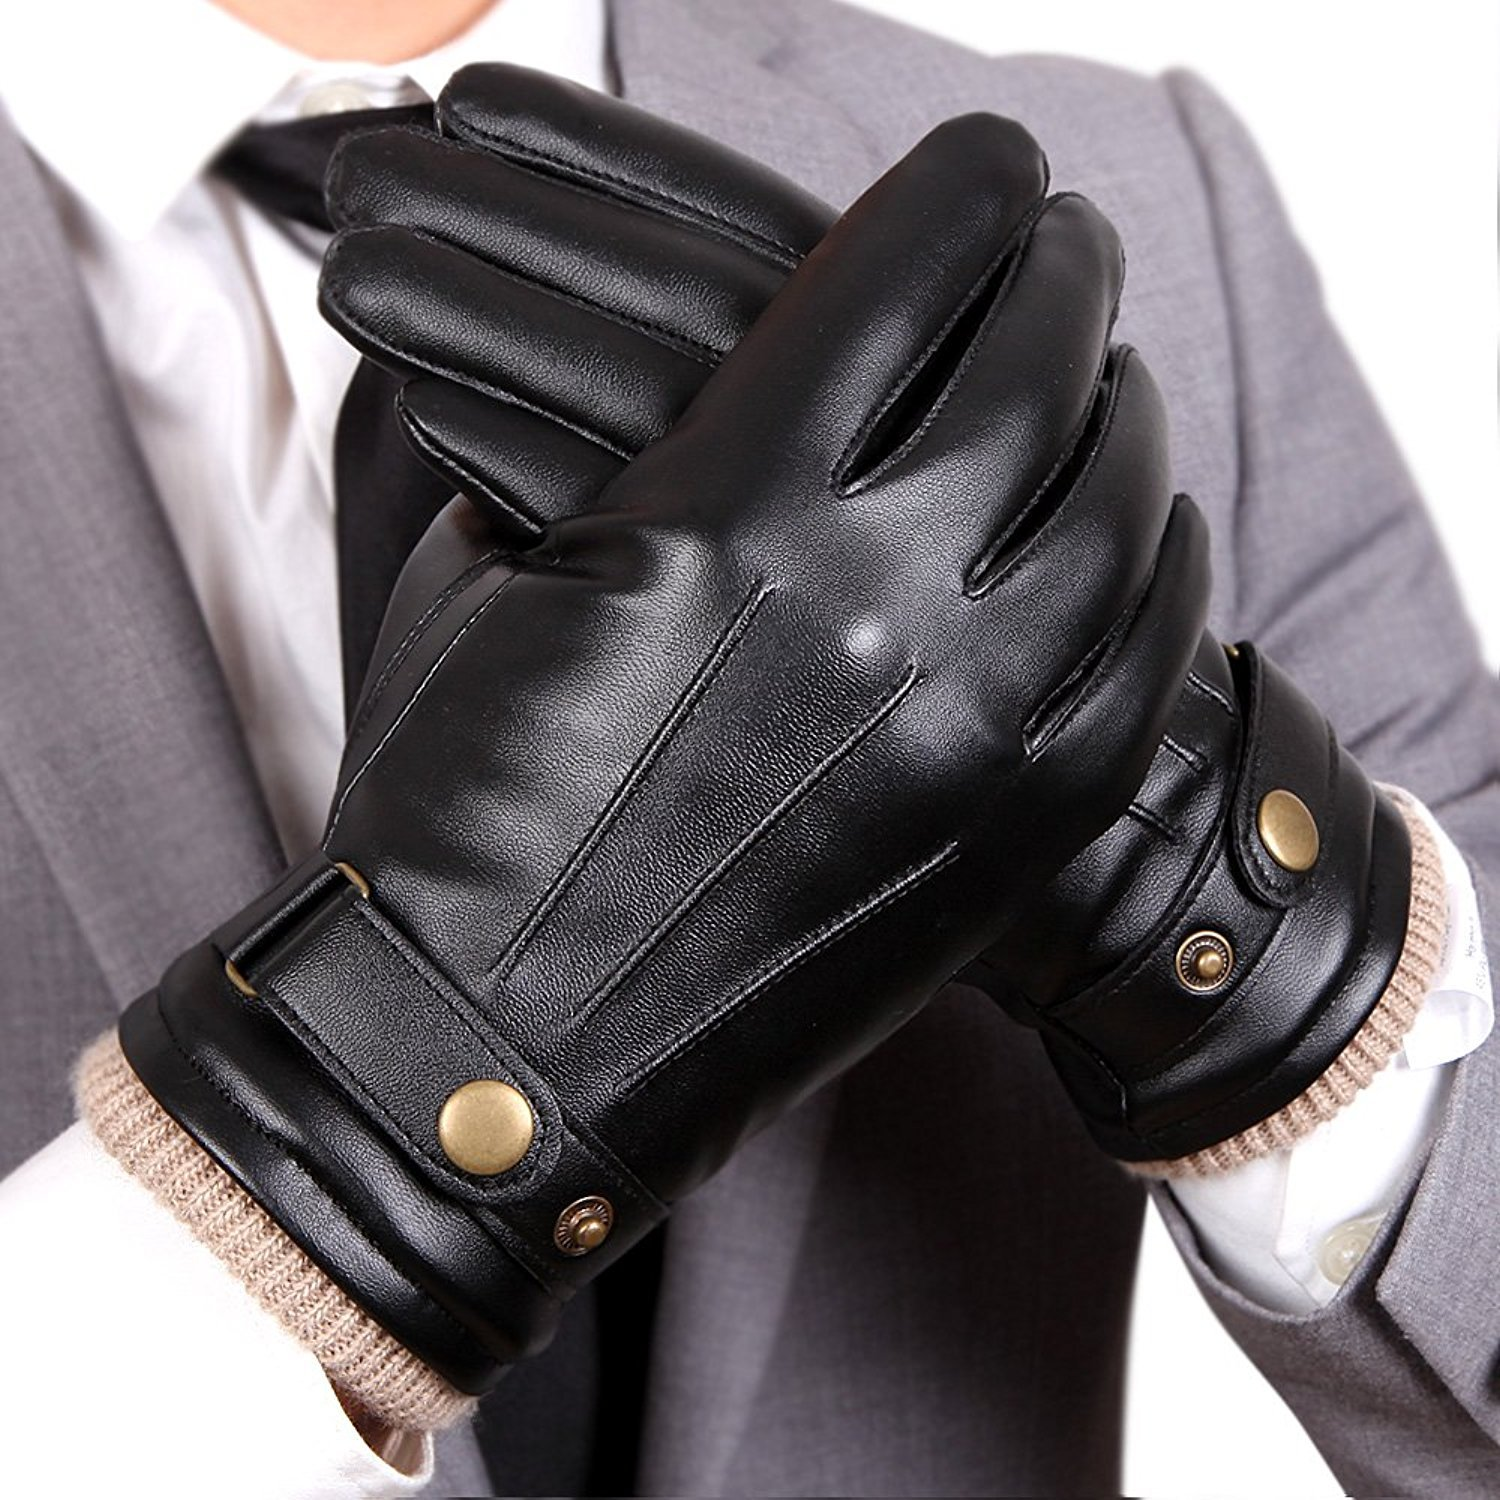 WARMEN Mens Touchscreen Texting Winter PU Faux Leather Gloves Driving Long Fleece Lining Black - Wool/Cashmere Blend Cuff (8.5, Black (Touchscreen))